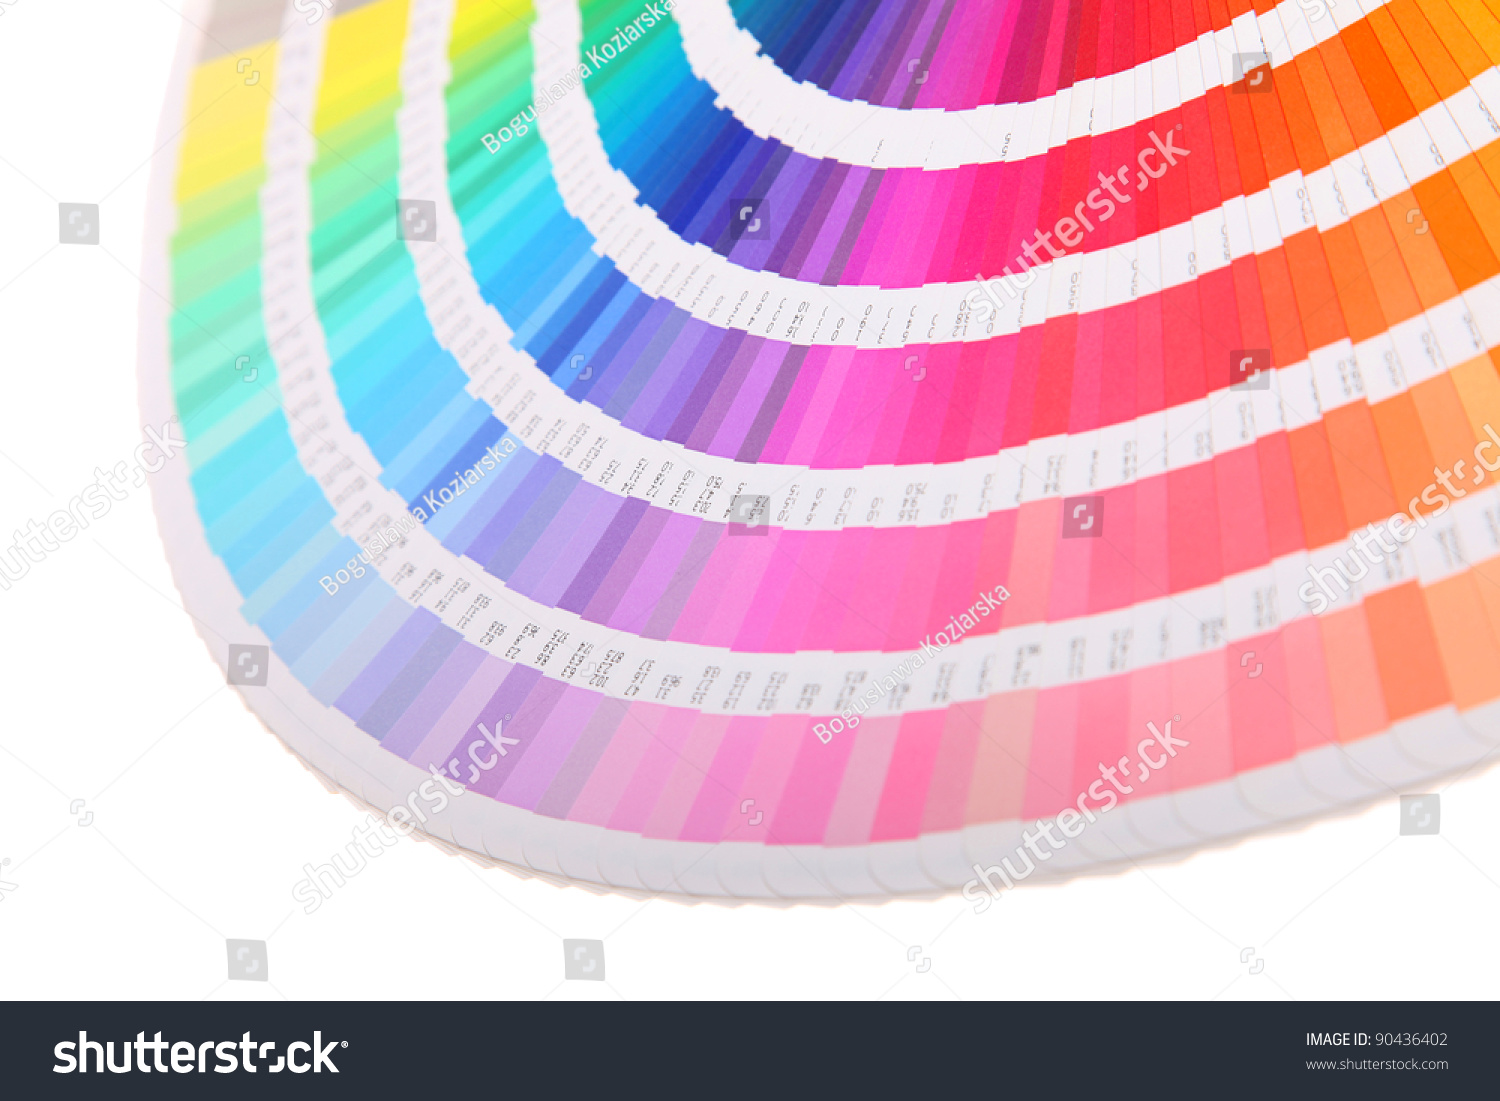 Color Swatch Book Stock Photo (Royalty Free) 90436402 - Shutterstock